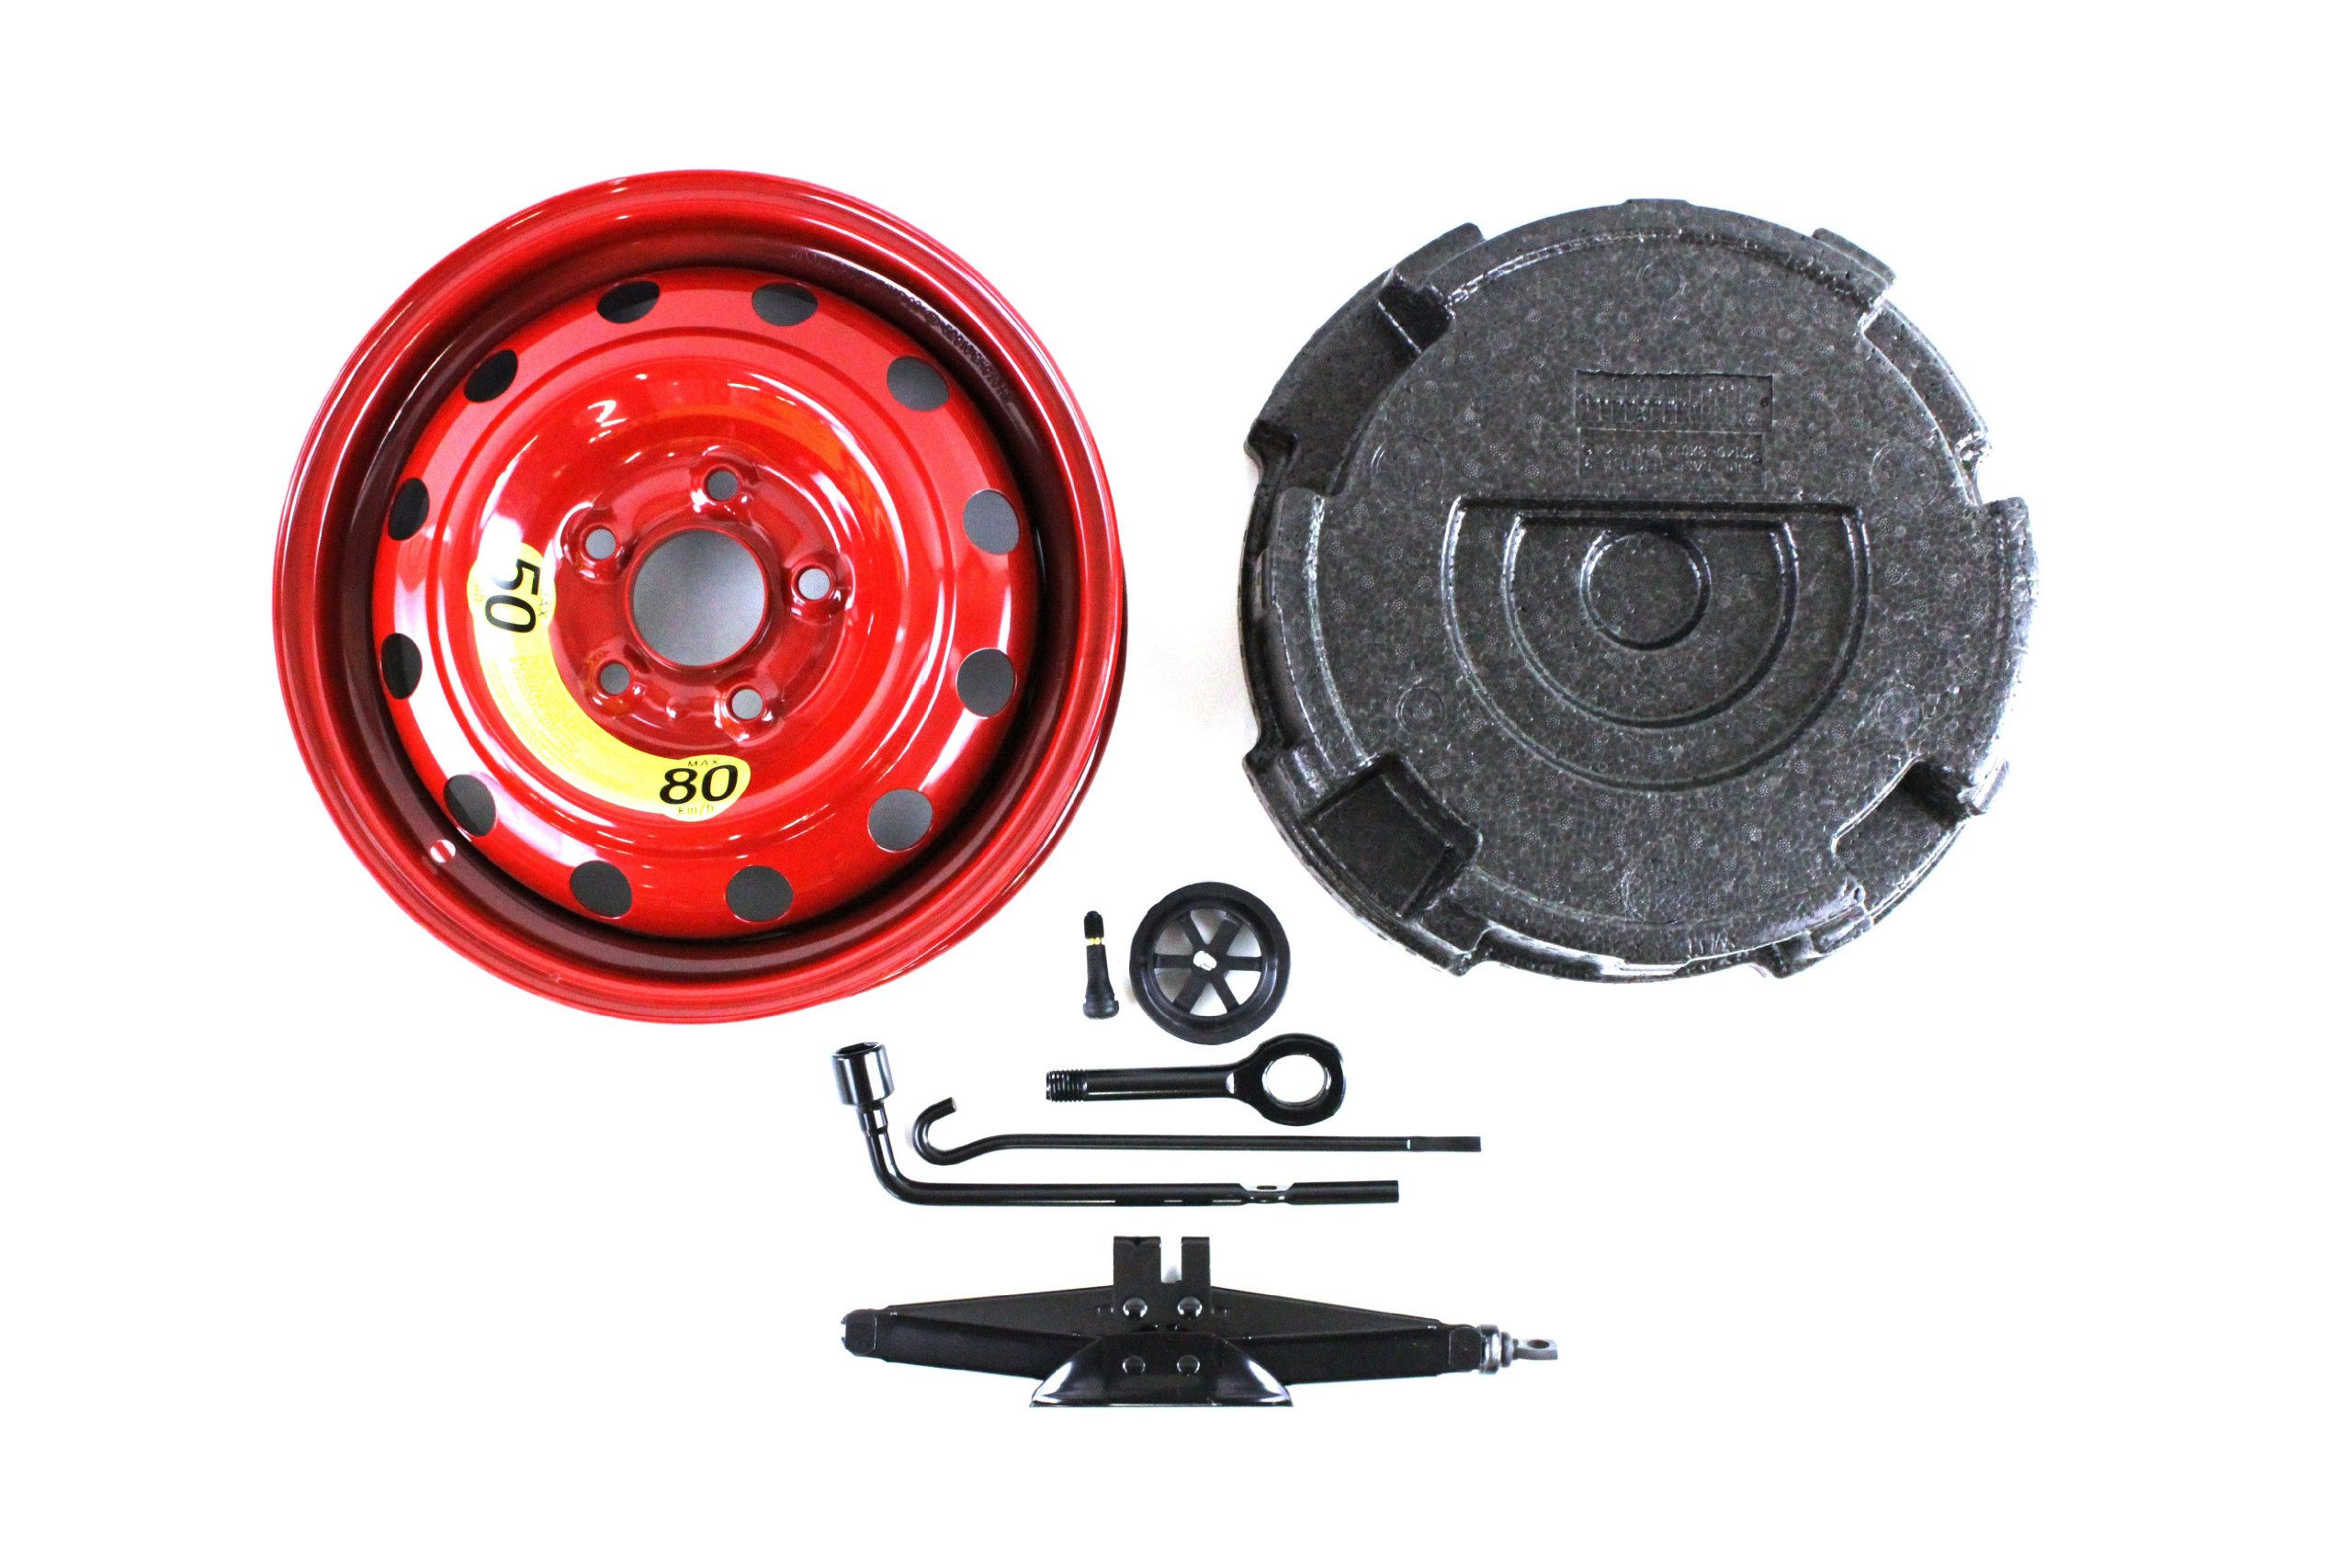 Genuine Hyundai Accessories 09100-3Y111 Spare Tire Wheel Kit for Hyundai Elantra